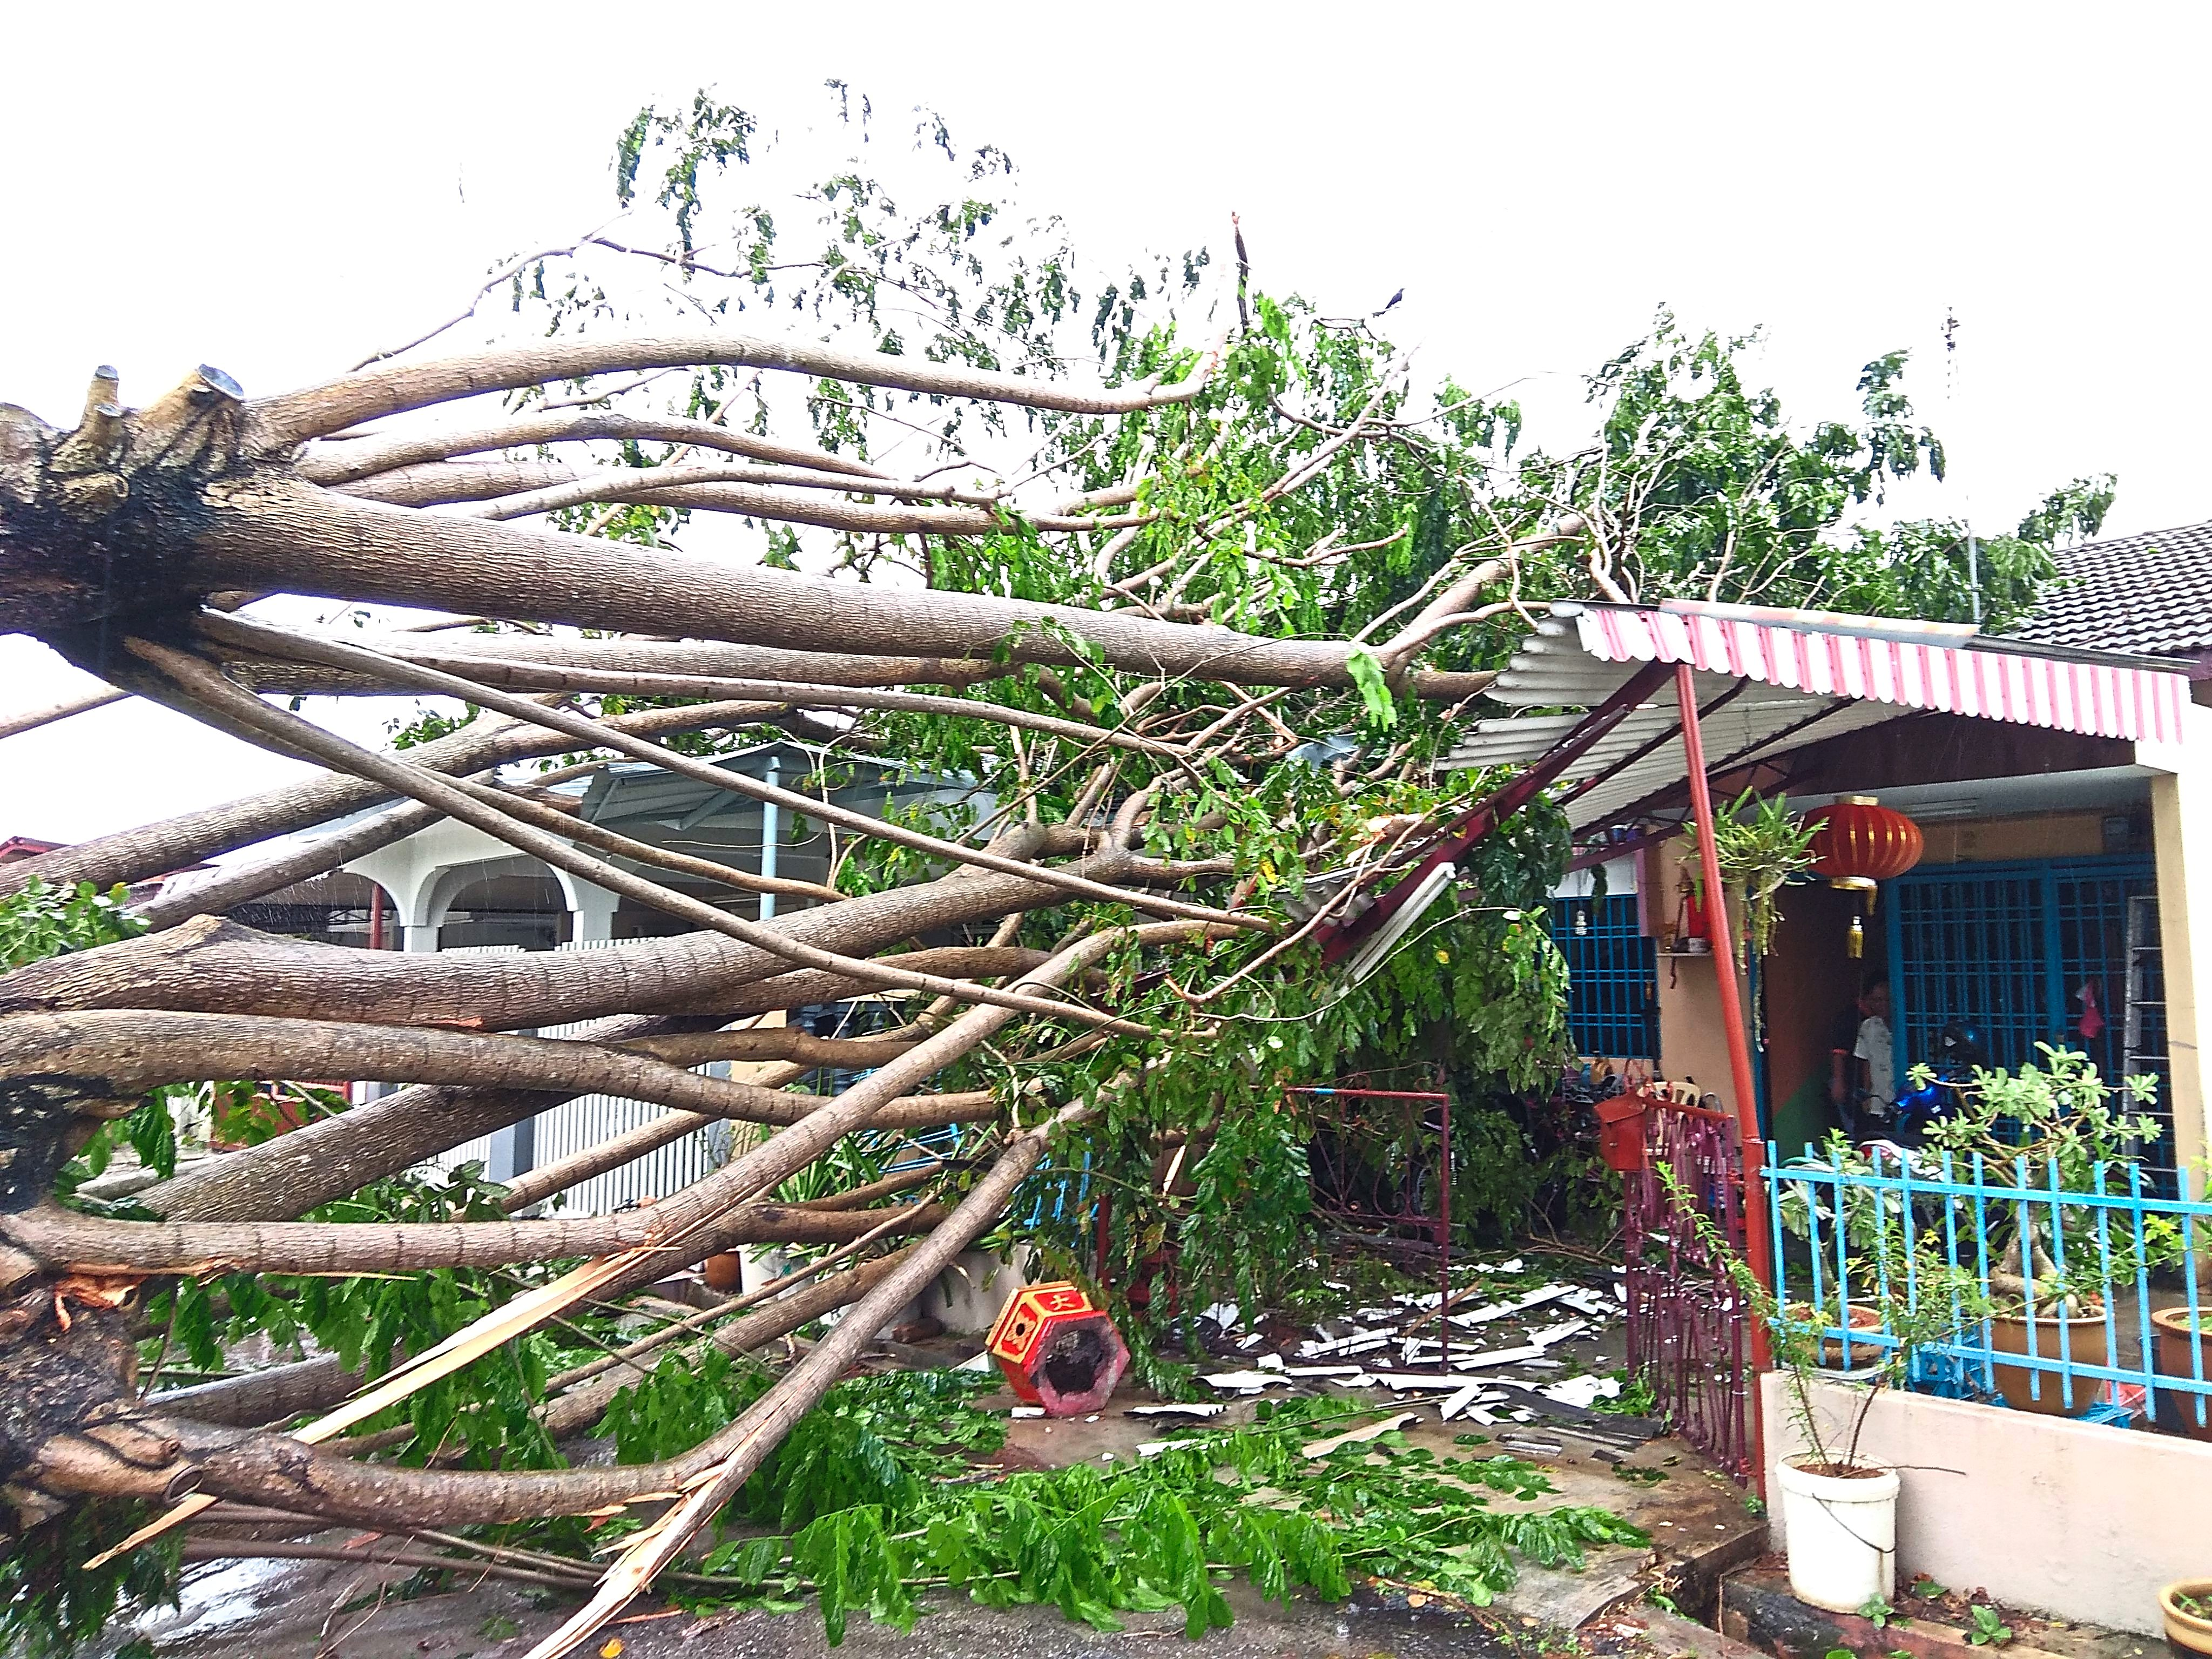 The tree that crashed on two houses in Lintang Muda, Klang. — Photos: SAM THAM/The Star